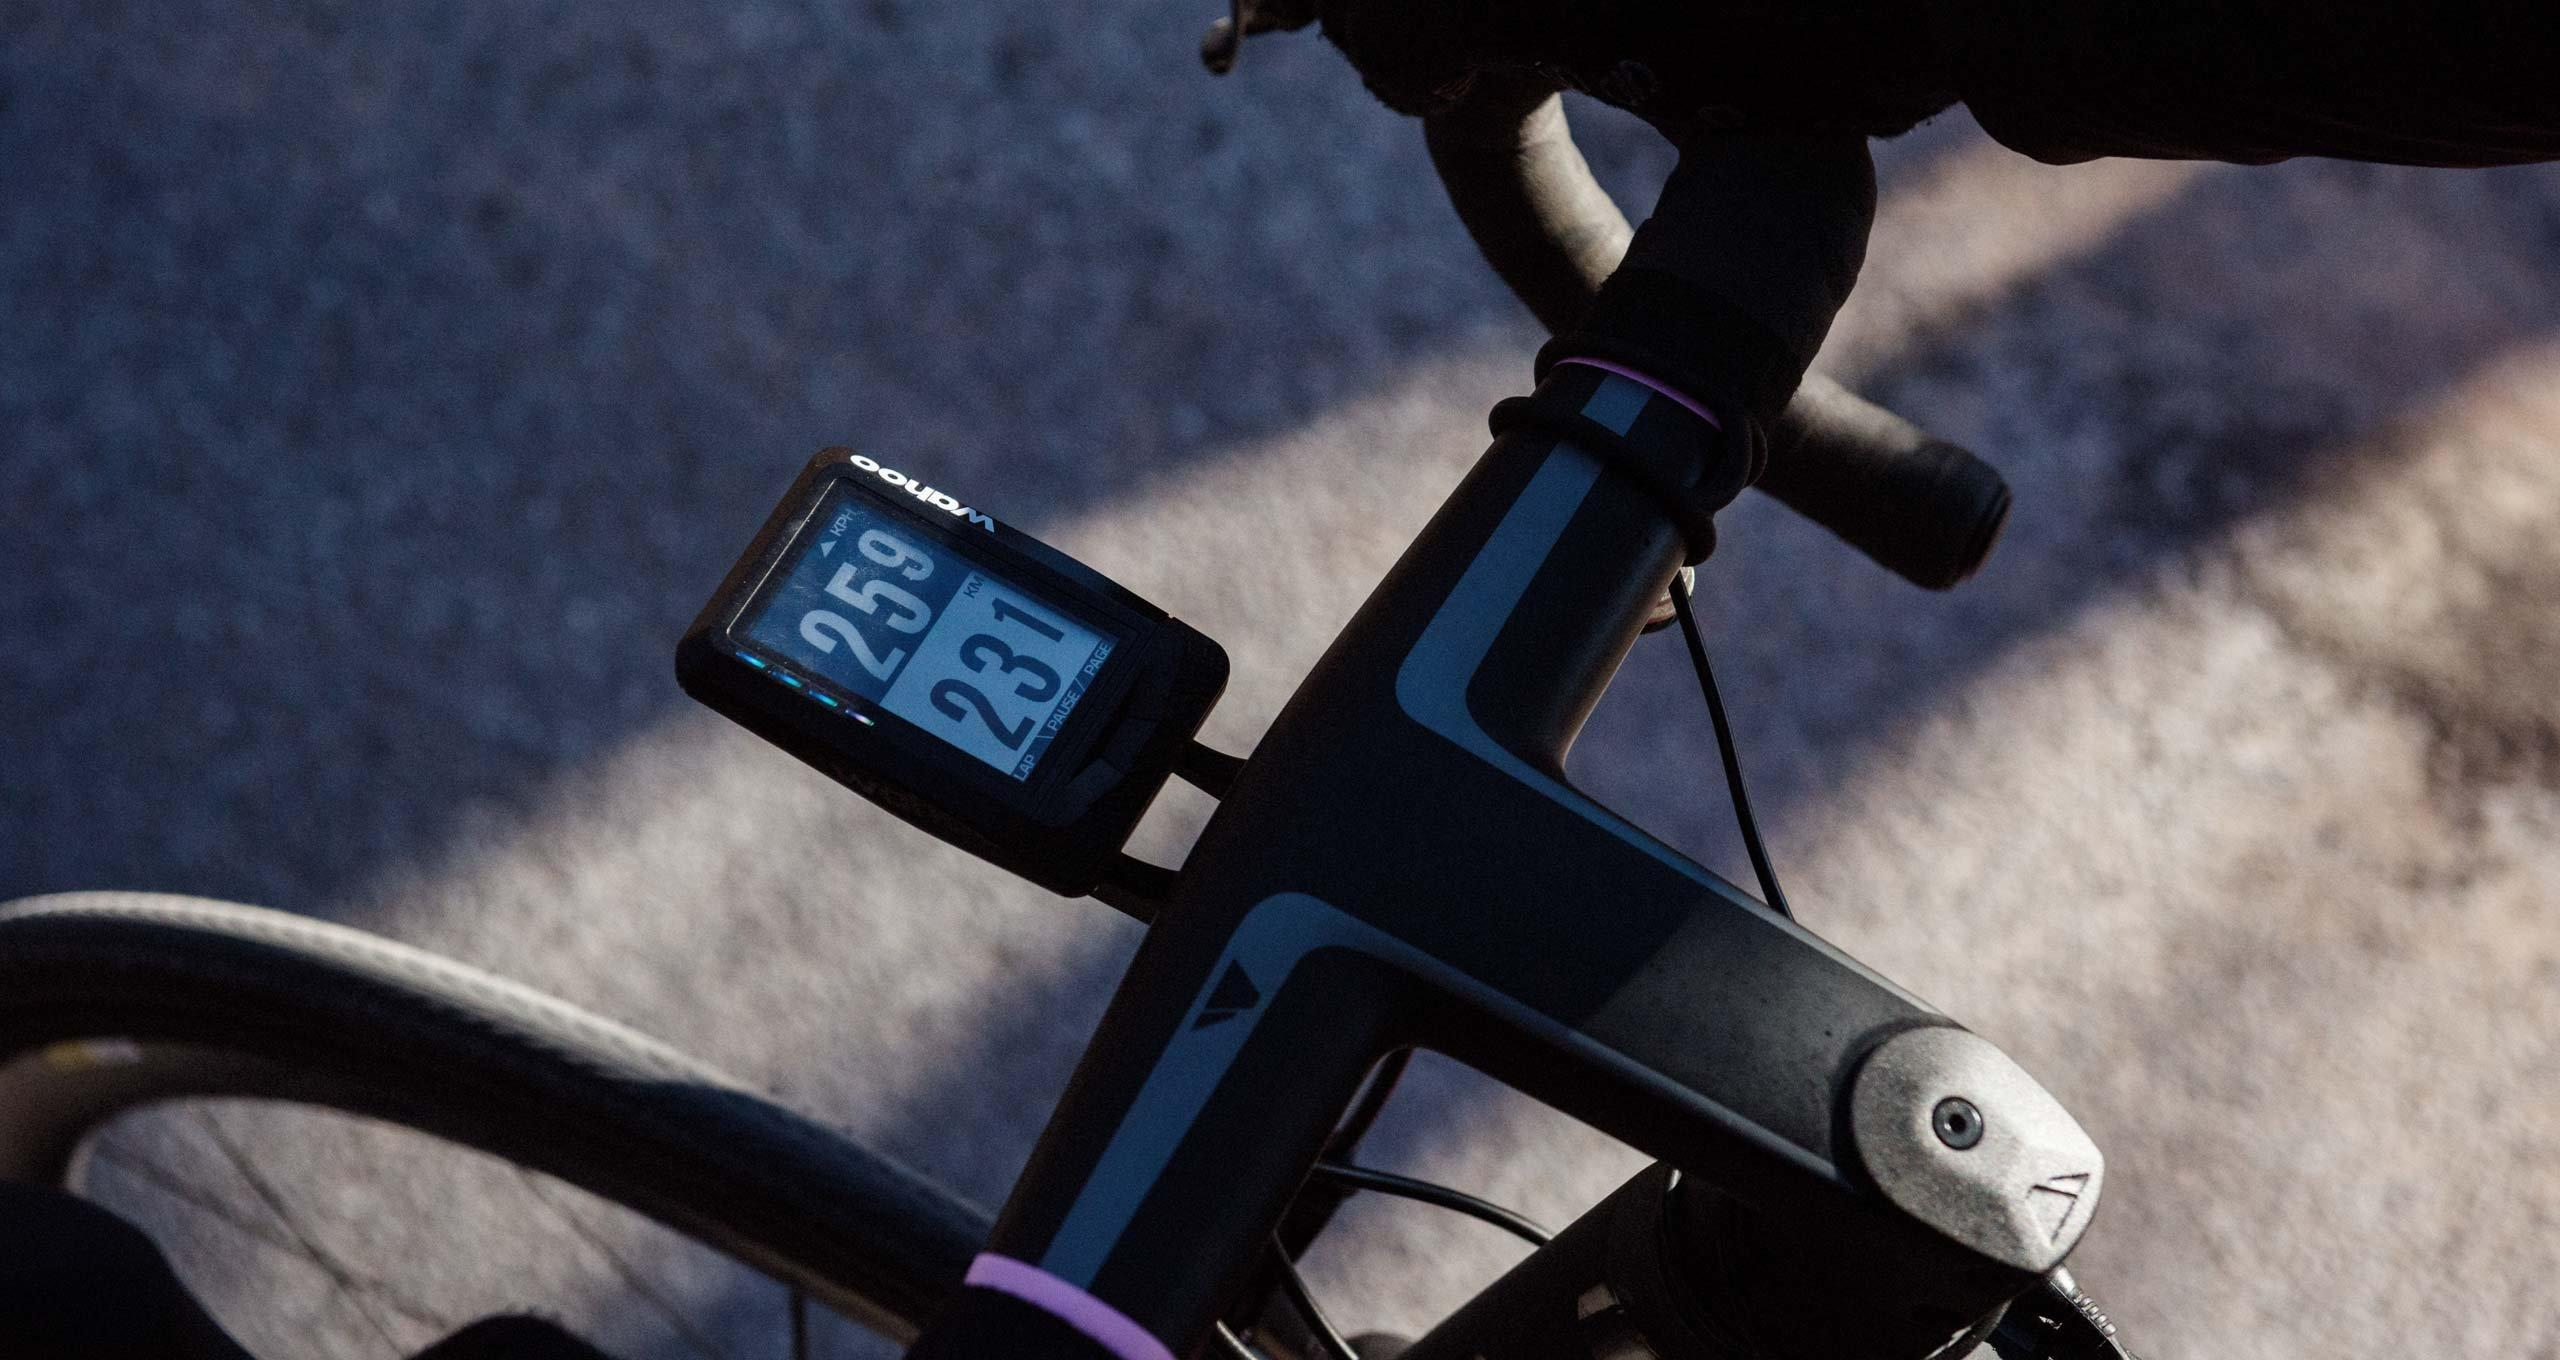 Wahoo Elemnt mounted to Canyon RCC bike